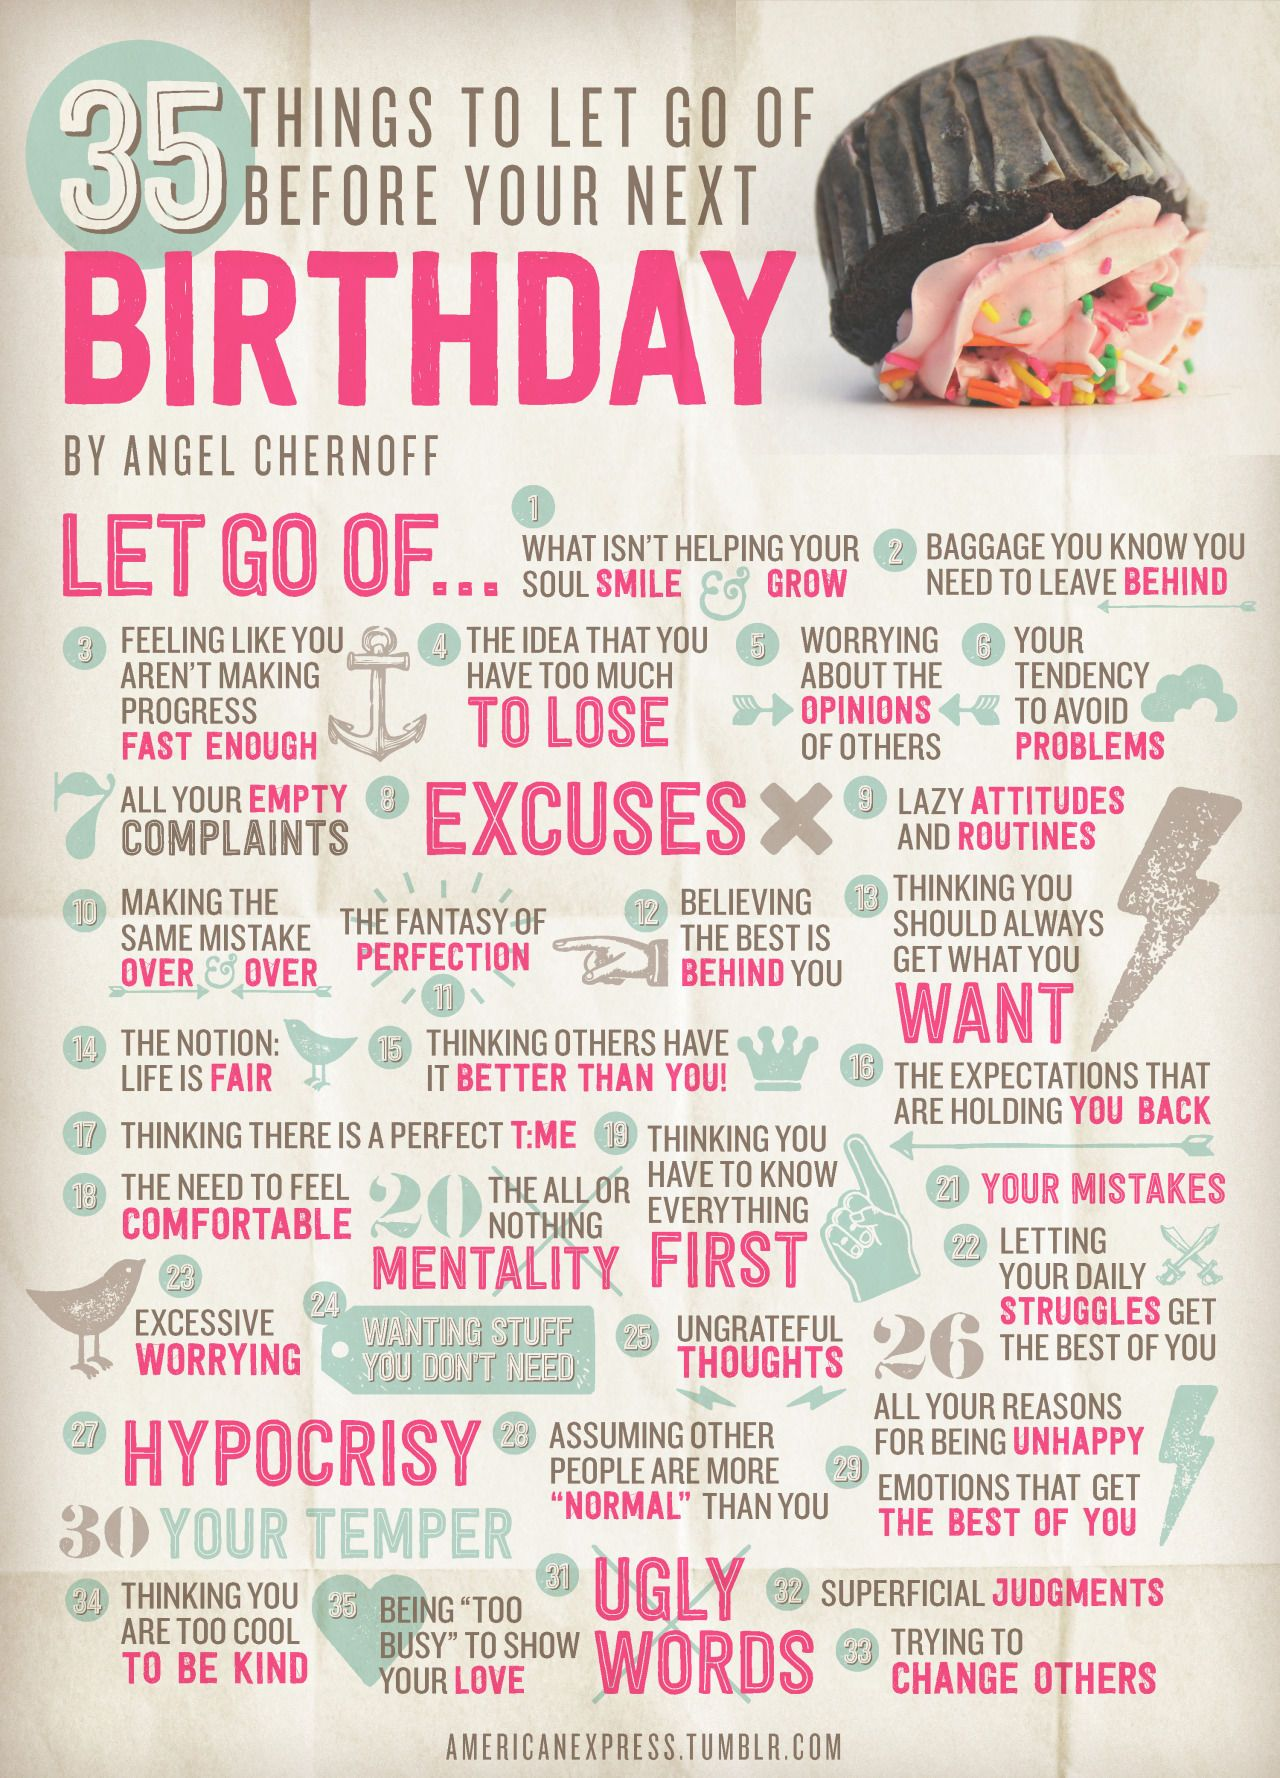 35 Things To Let Go Of Before Your Next Birthday #birthdaymonth